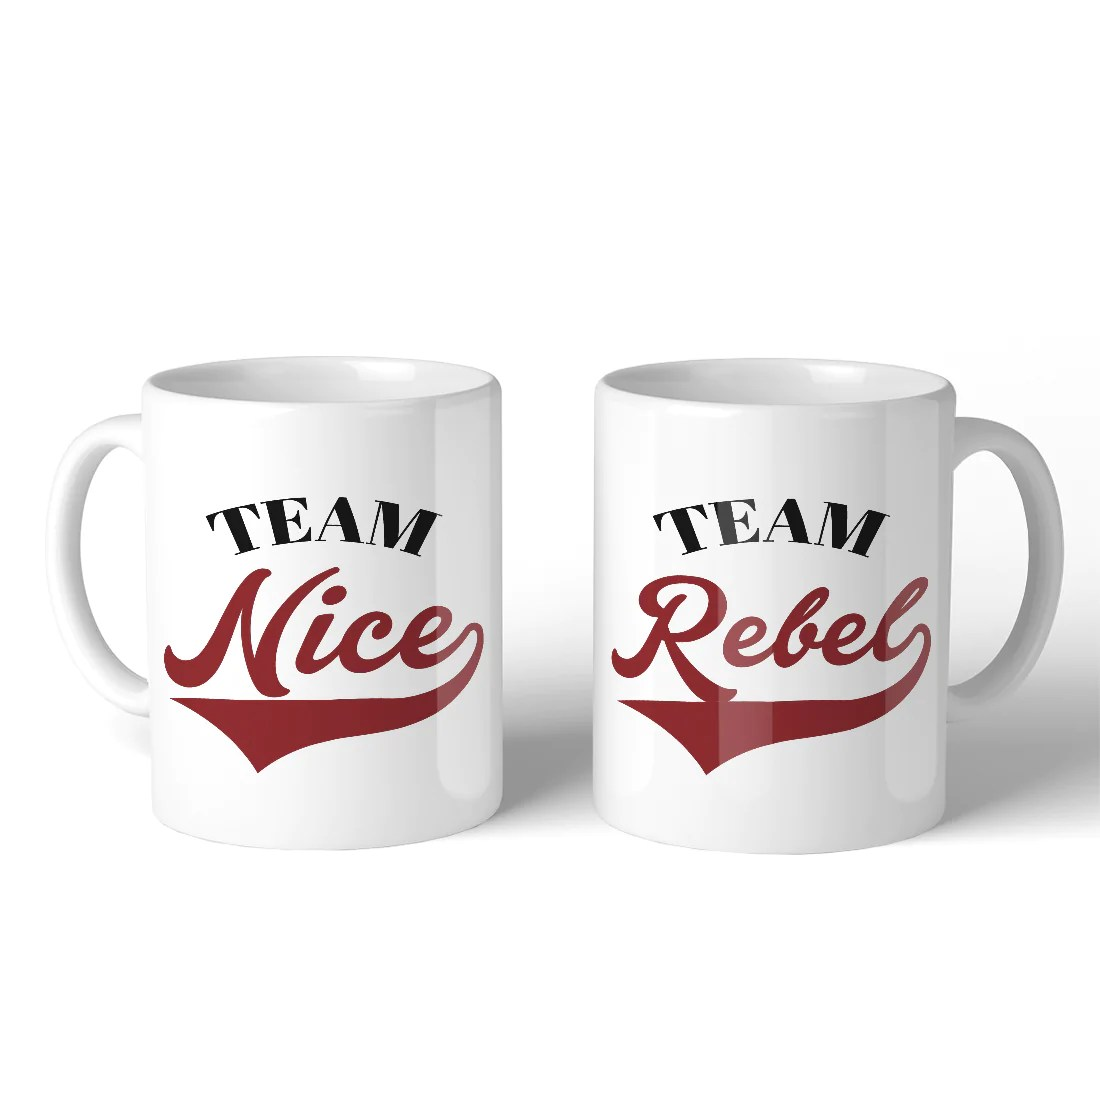 Where To Buy Nice Coffee Mugs Team Nice Team Rebel Bff Matching Gift Ceramic Coffee Mugs 11oz